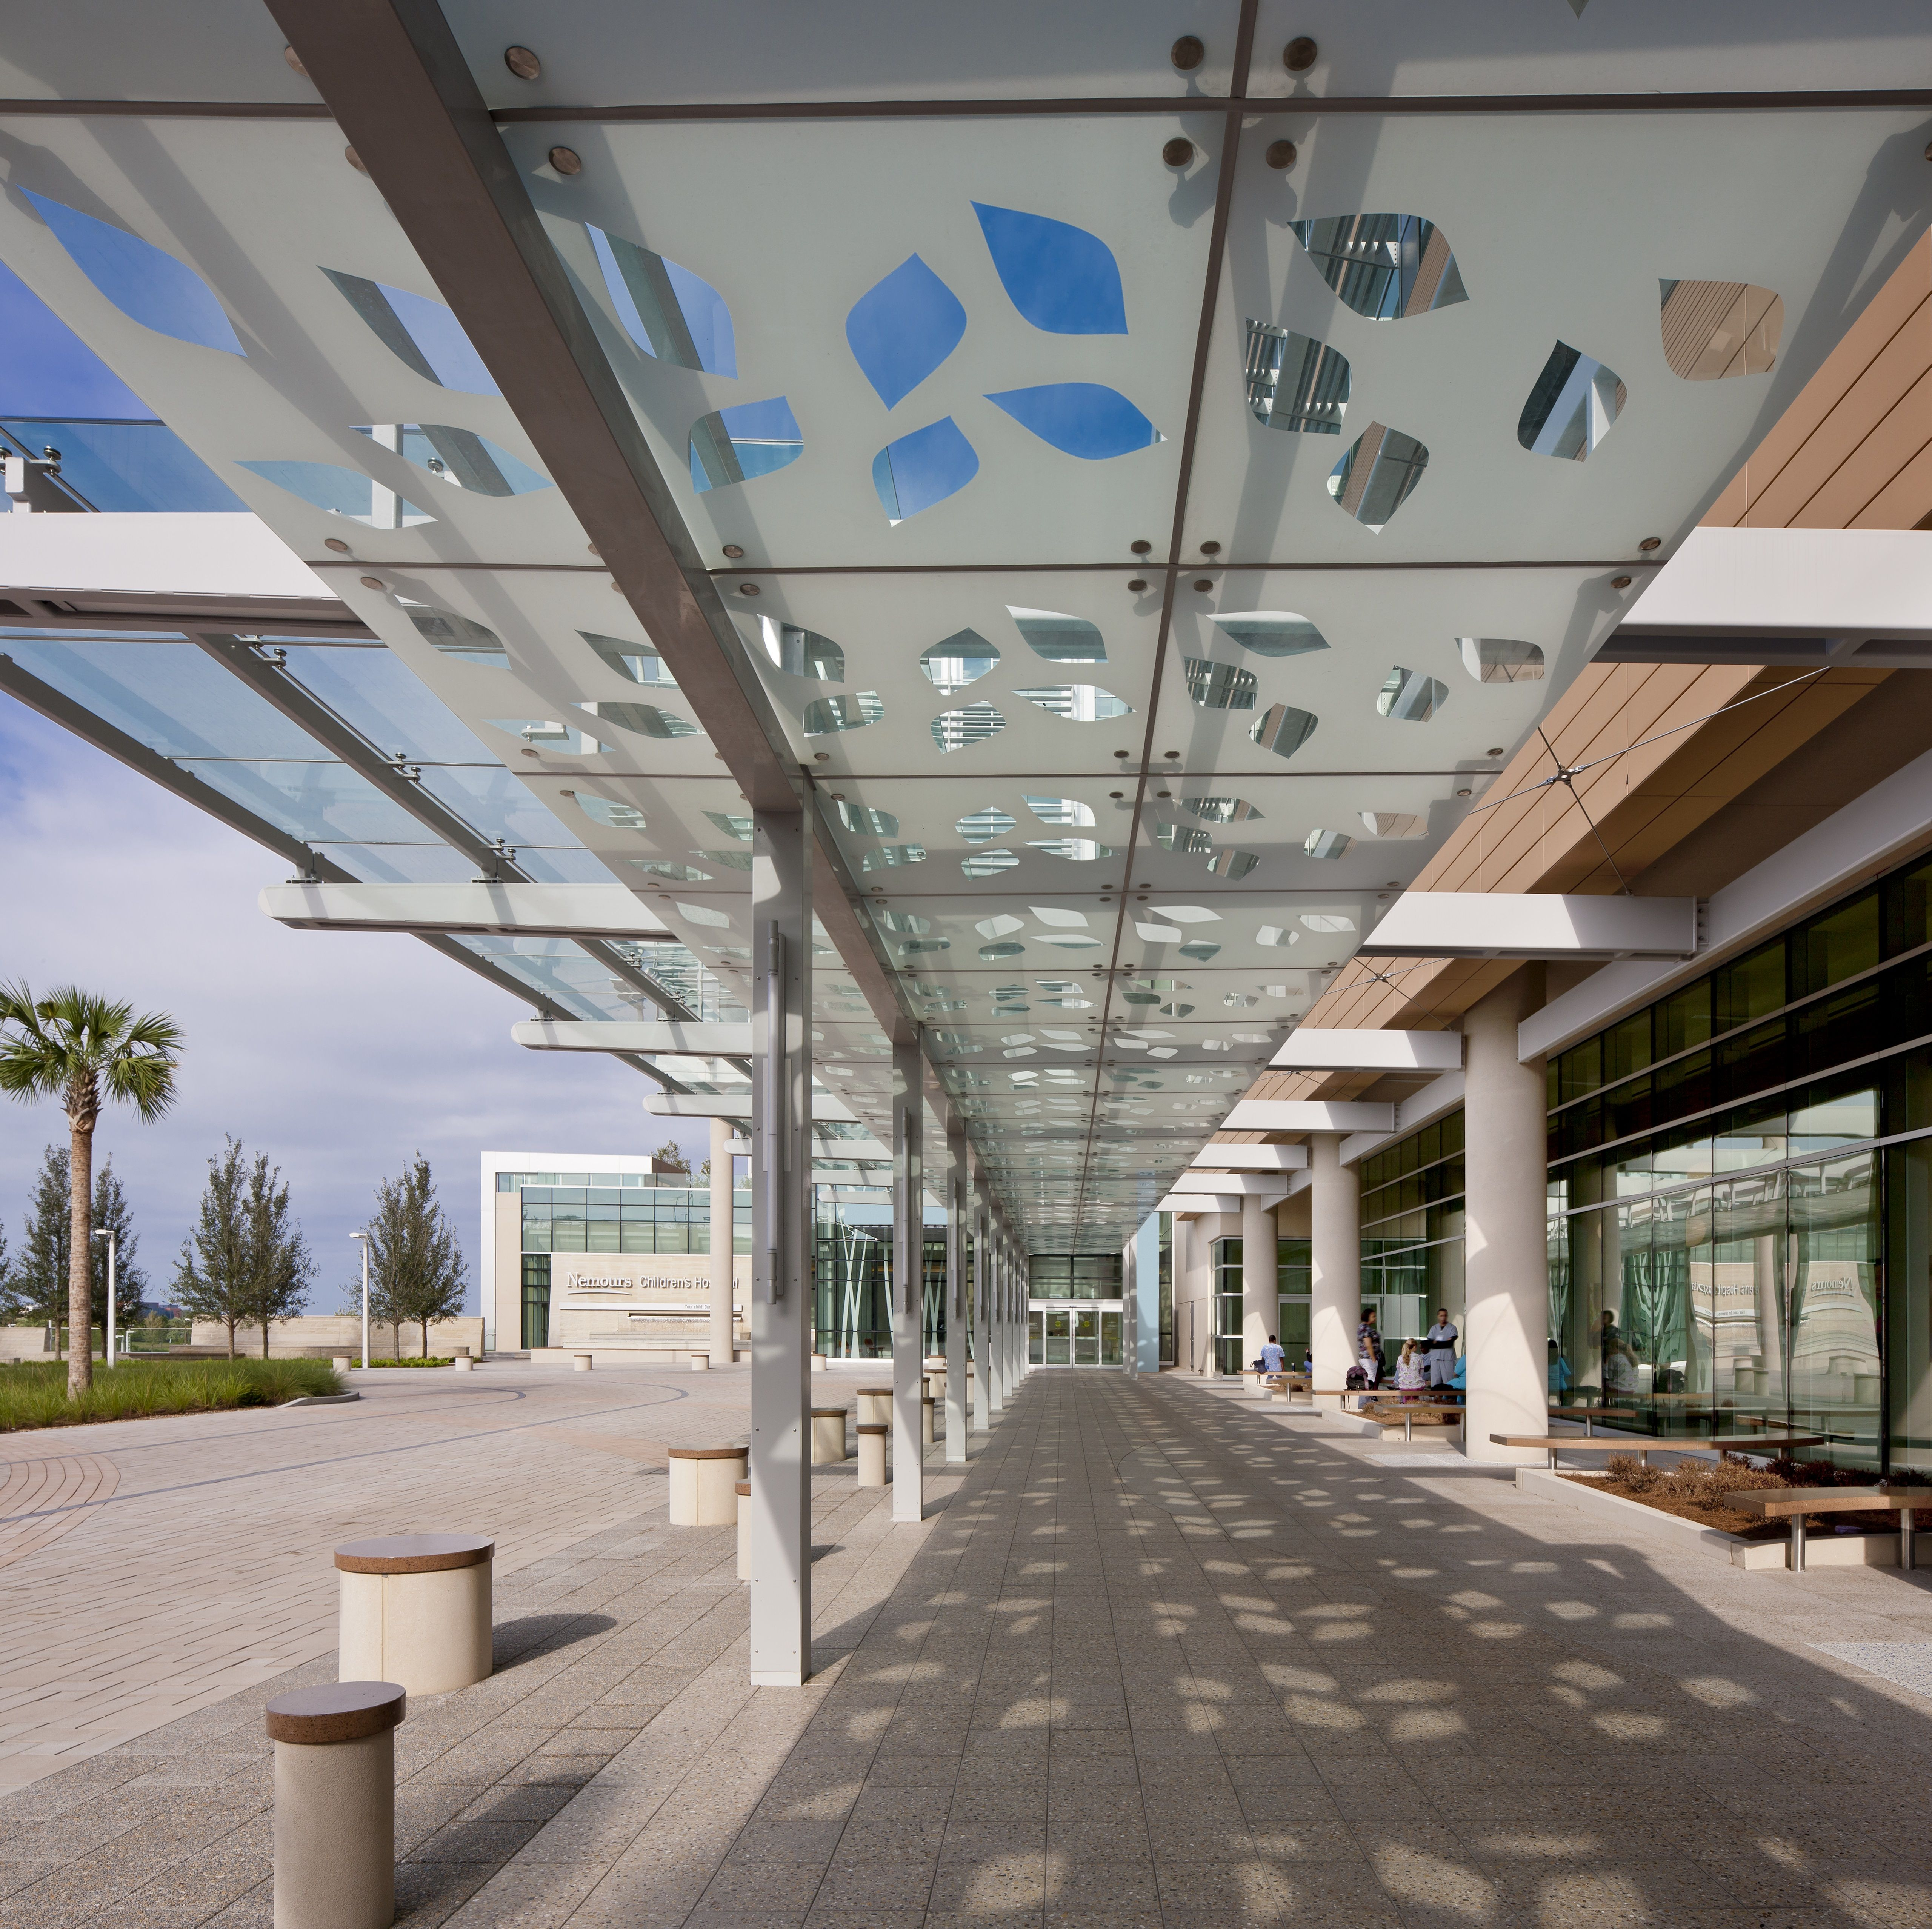 The car pick-up/drop-off zone at the main entrance provides a cover from the elements by using fritted glass with a leaf-shaped pattern. The design is repeated in larger dimensions on floors and ceilings throughout the hospital. Nemours Children's Hospital. Jonathan Hillyer/HillyerPhoto.com.